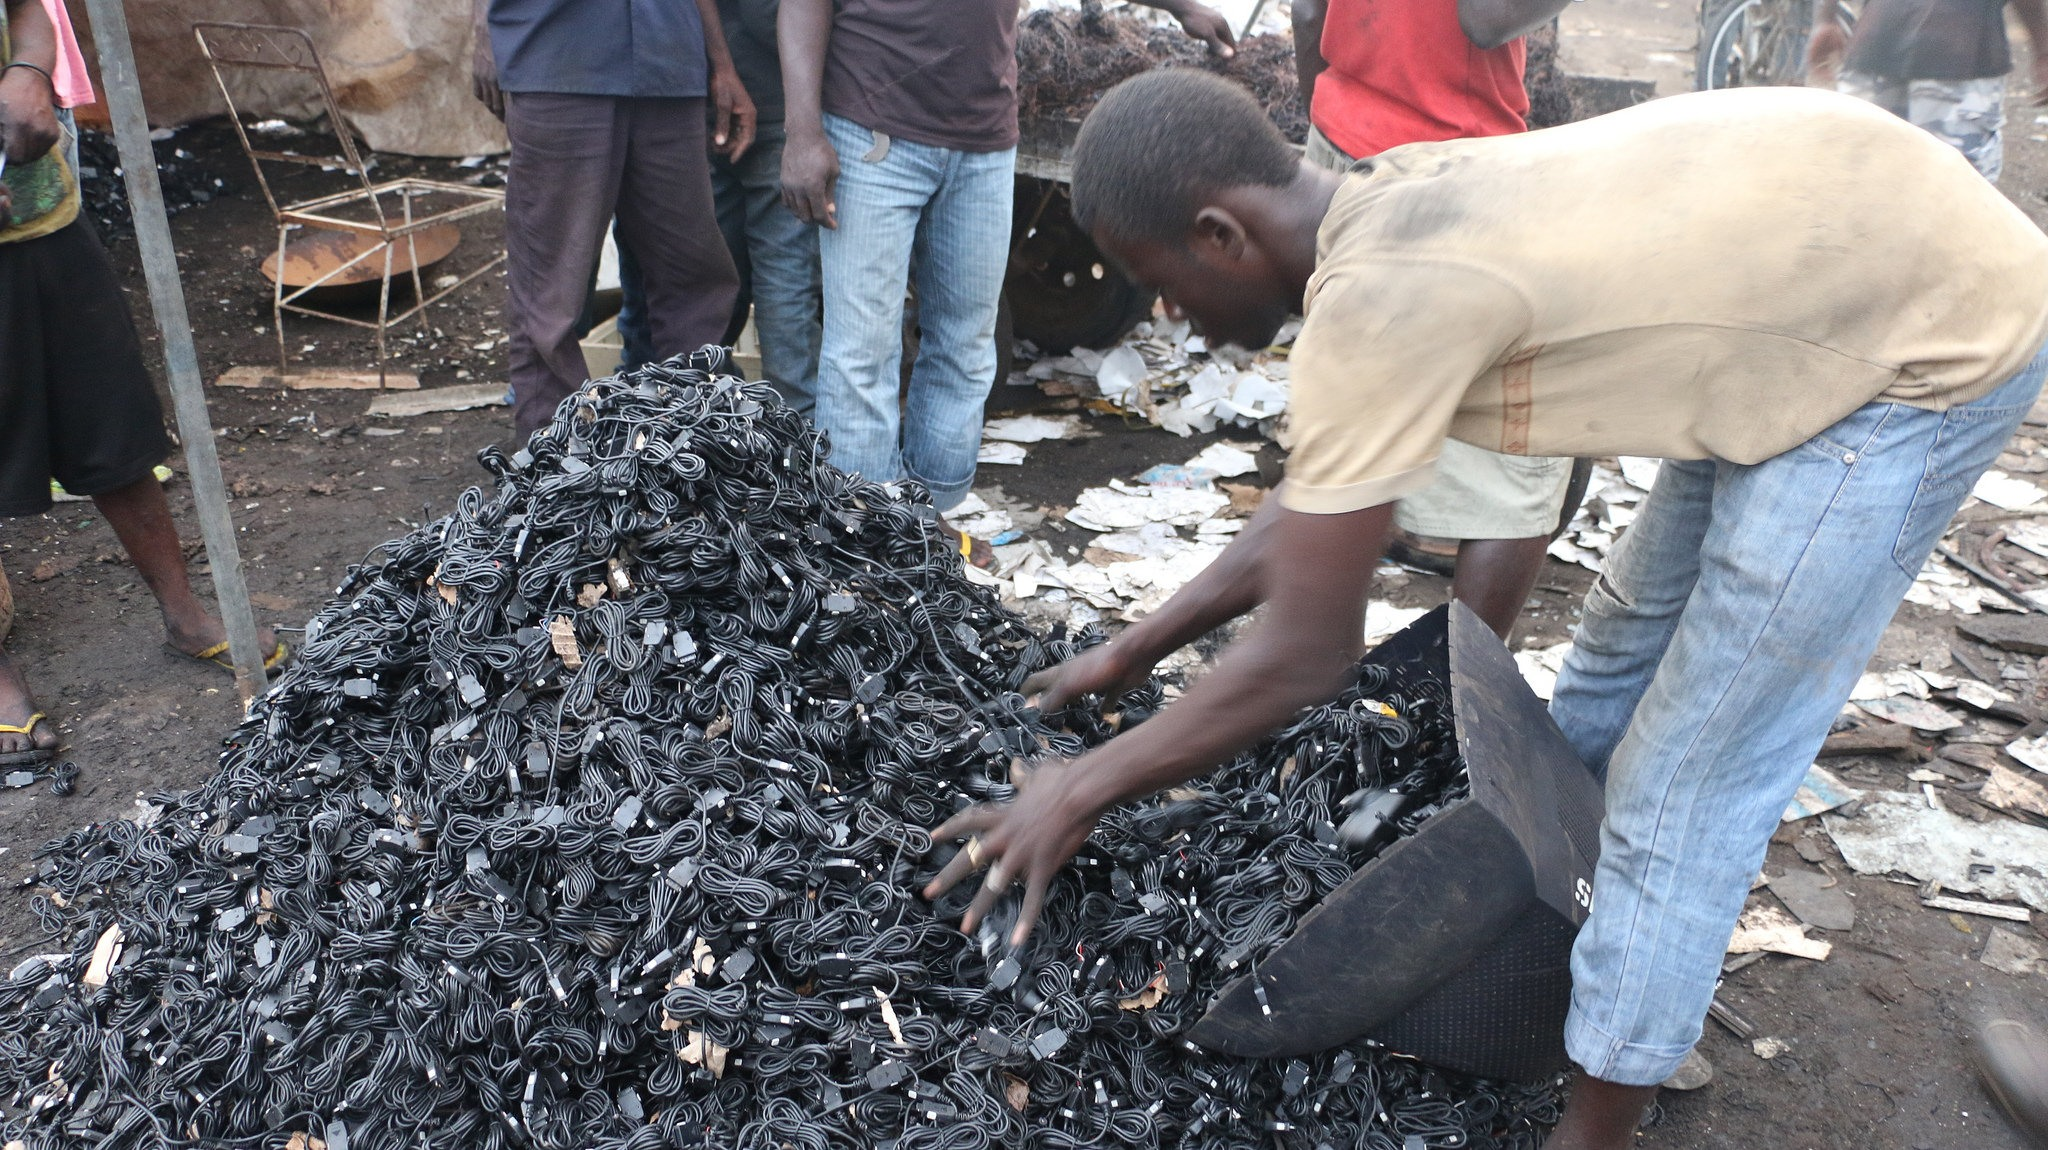 Image: Chargers collected as electronics dump, Agbogbloshie, Ghana. Fairphone